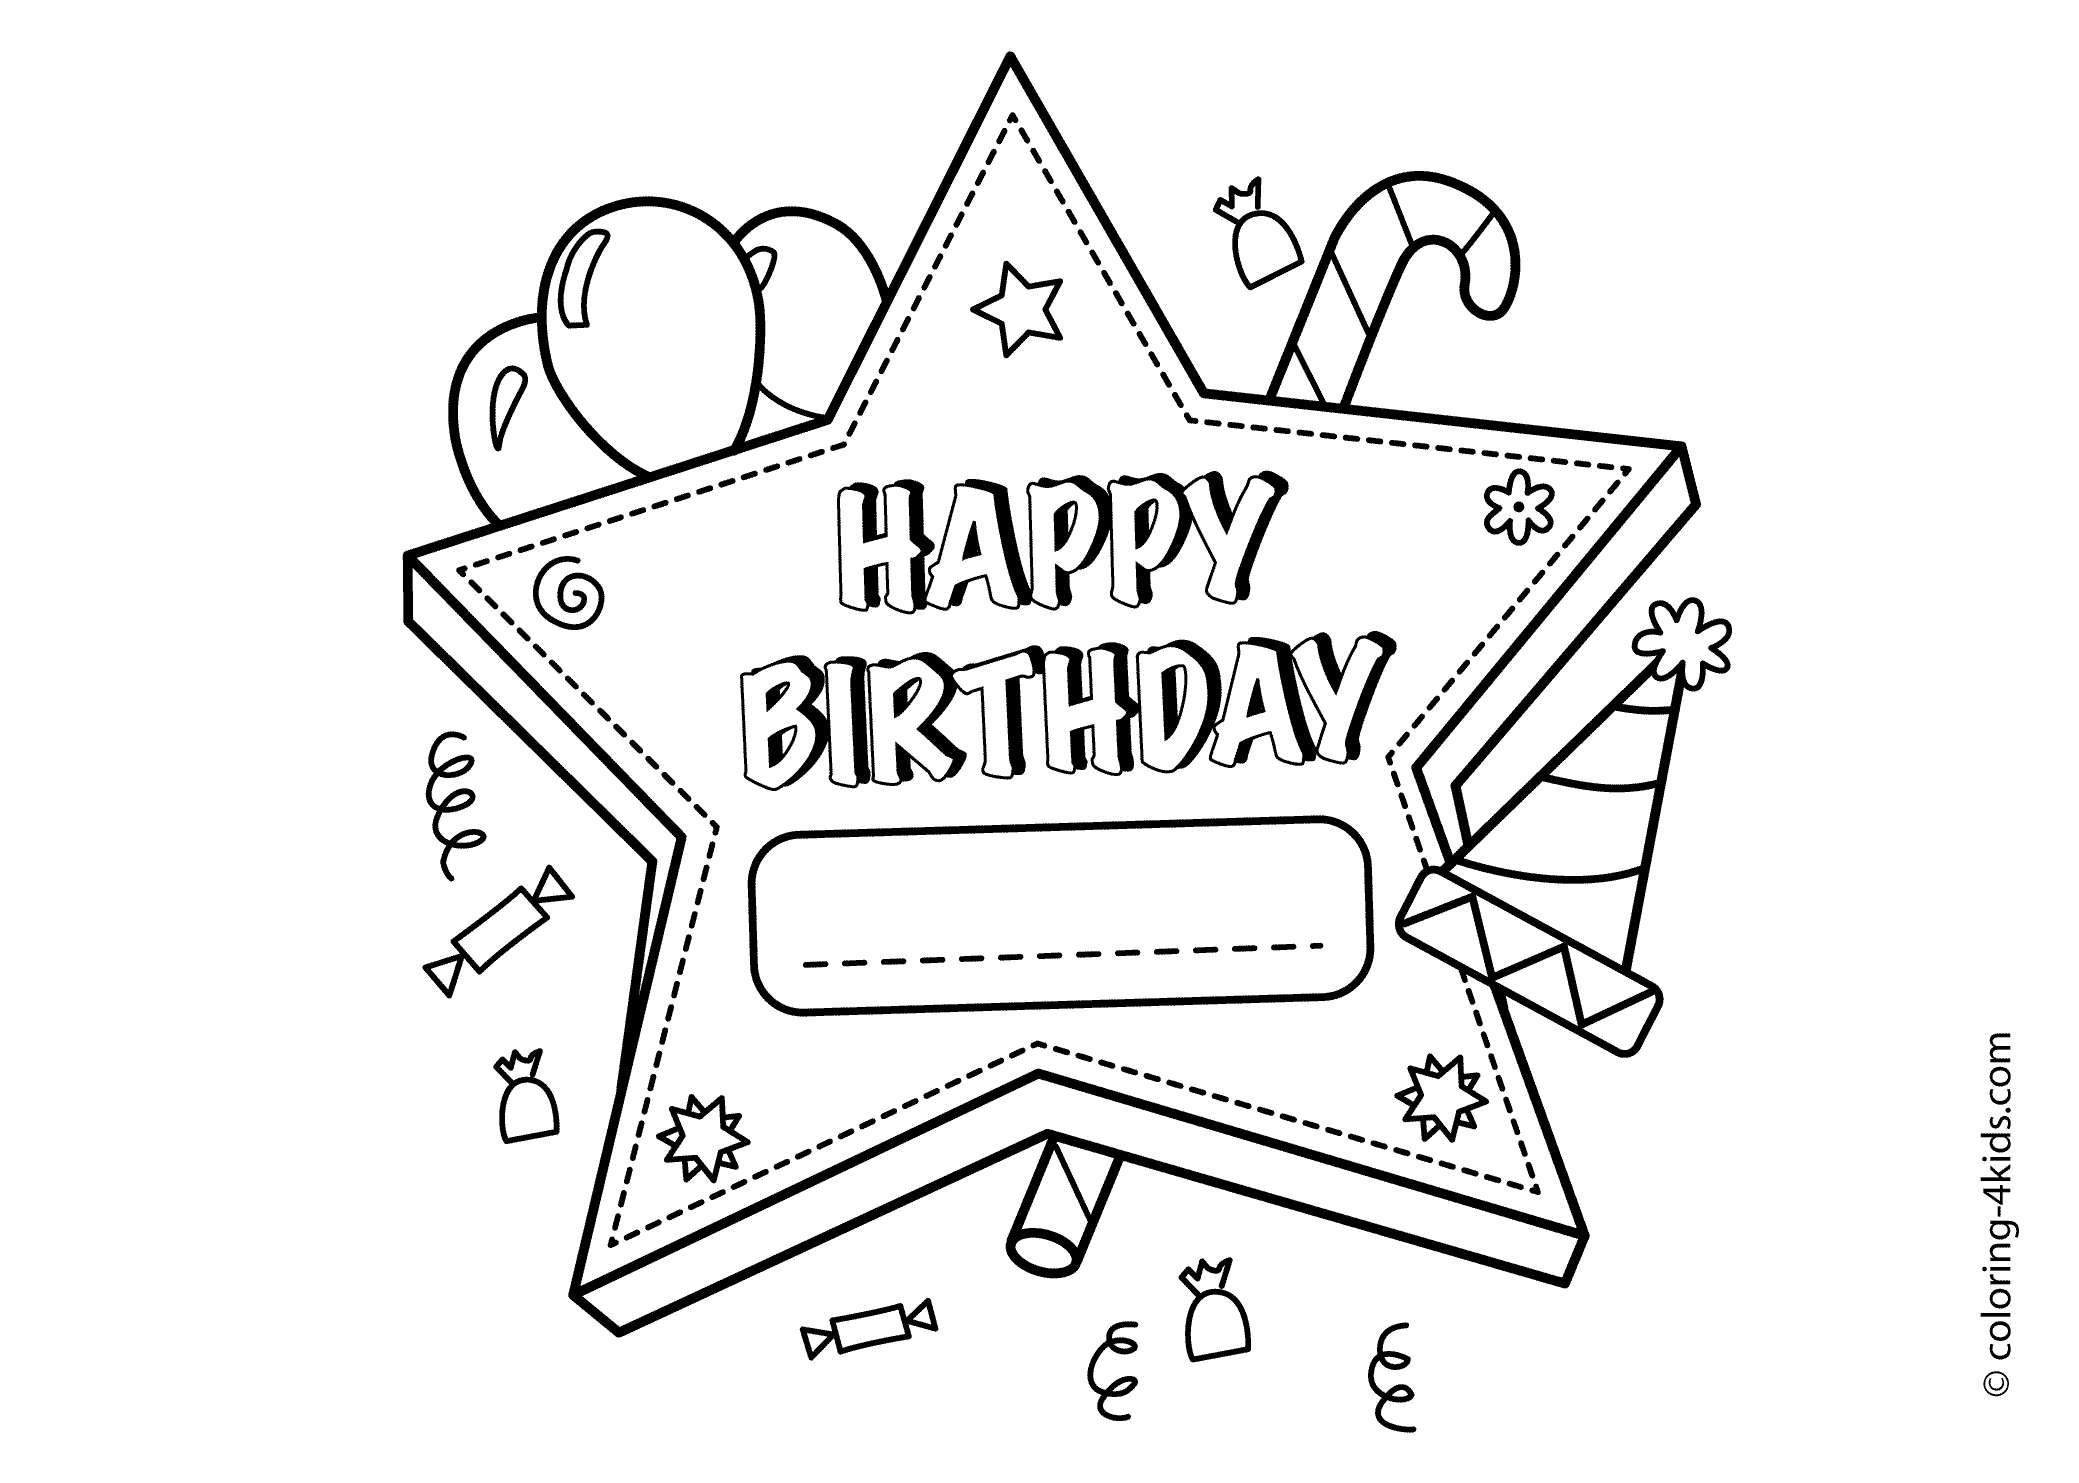 Happy Birthday Coloring Pages To Print Coloring Ideas Coloring Ideas Happy Birthday Card Printable Pages